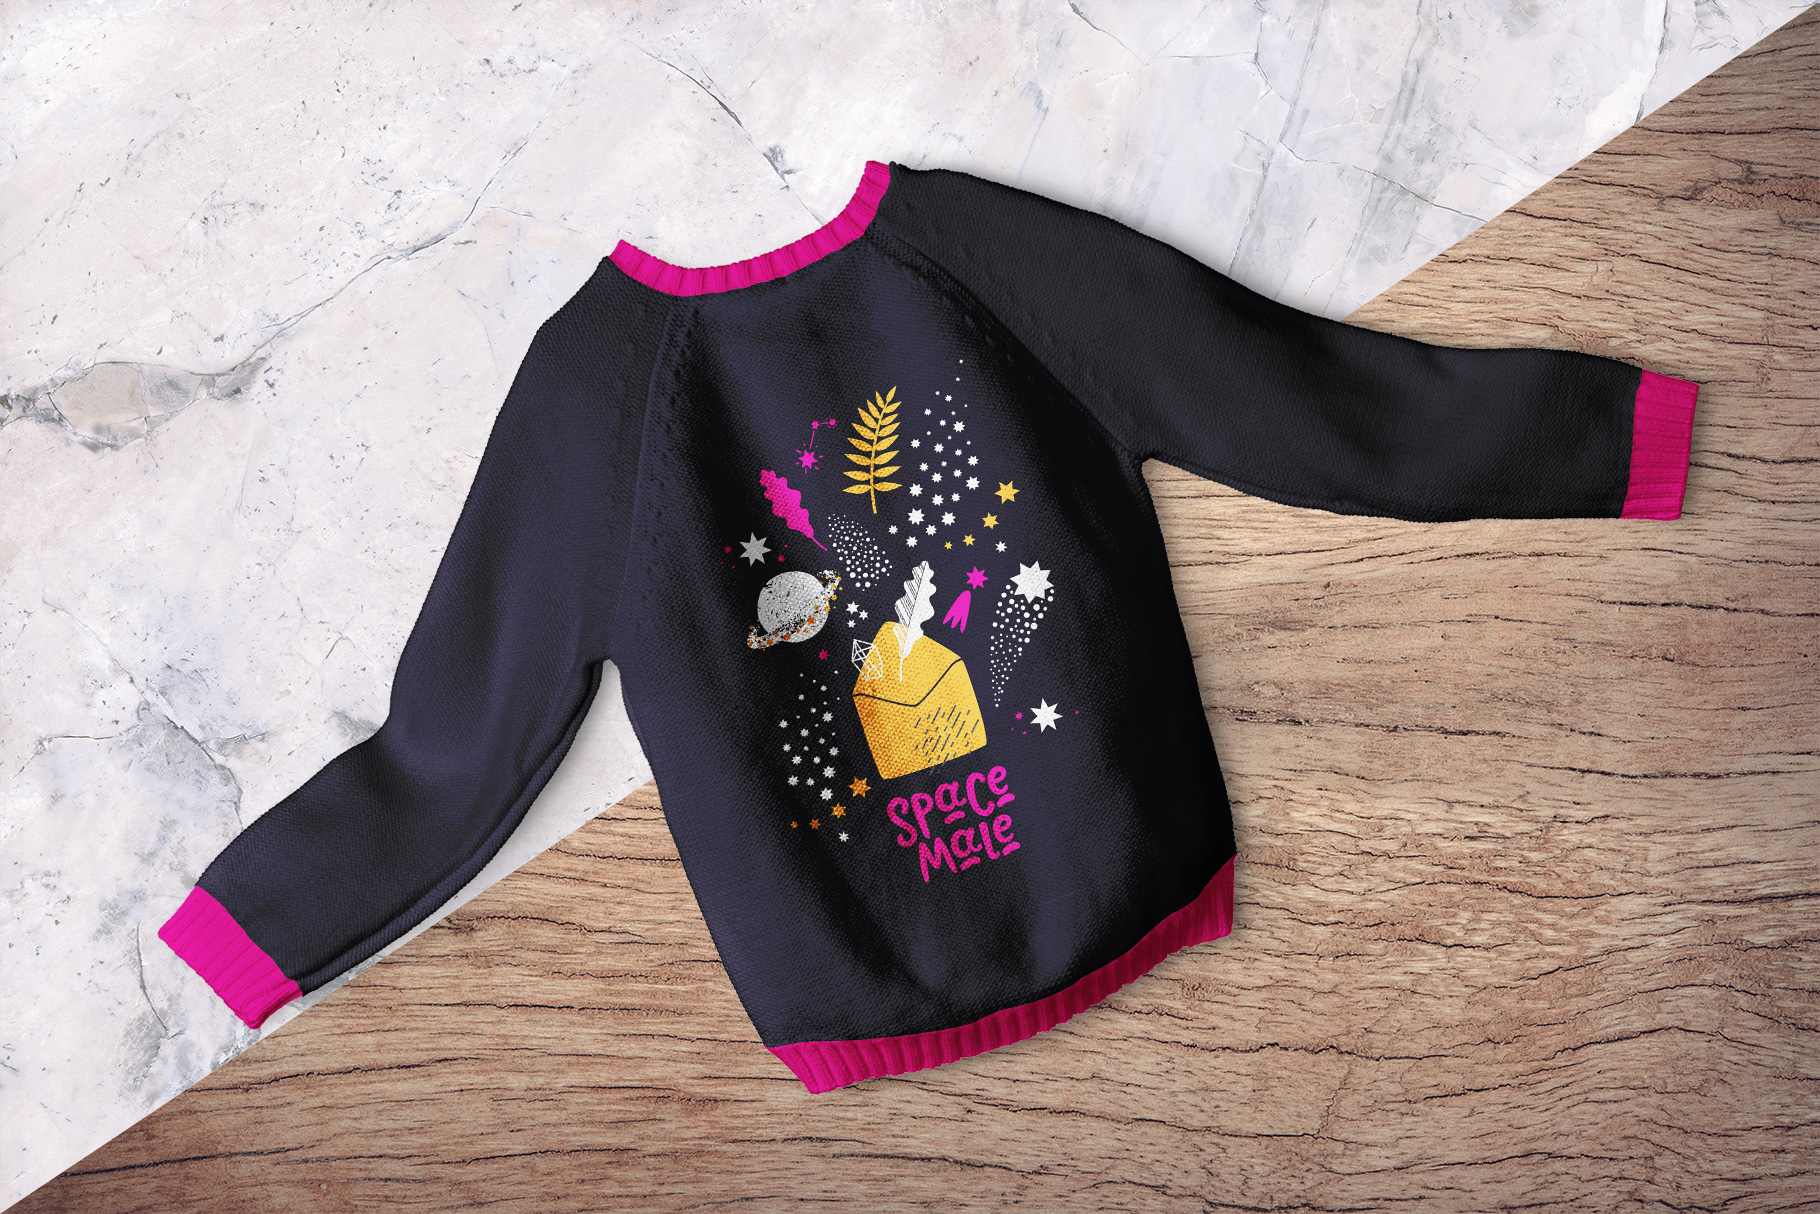 background options of the knitted kids jumper mockup